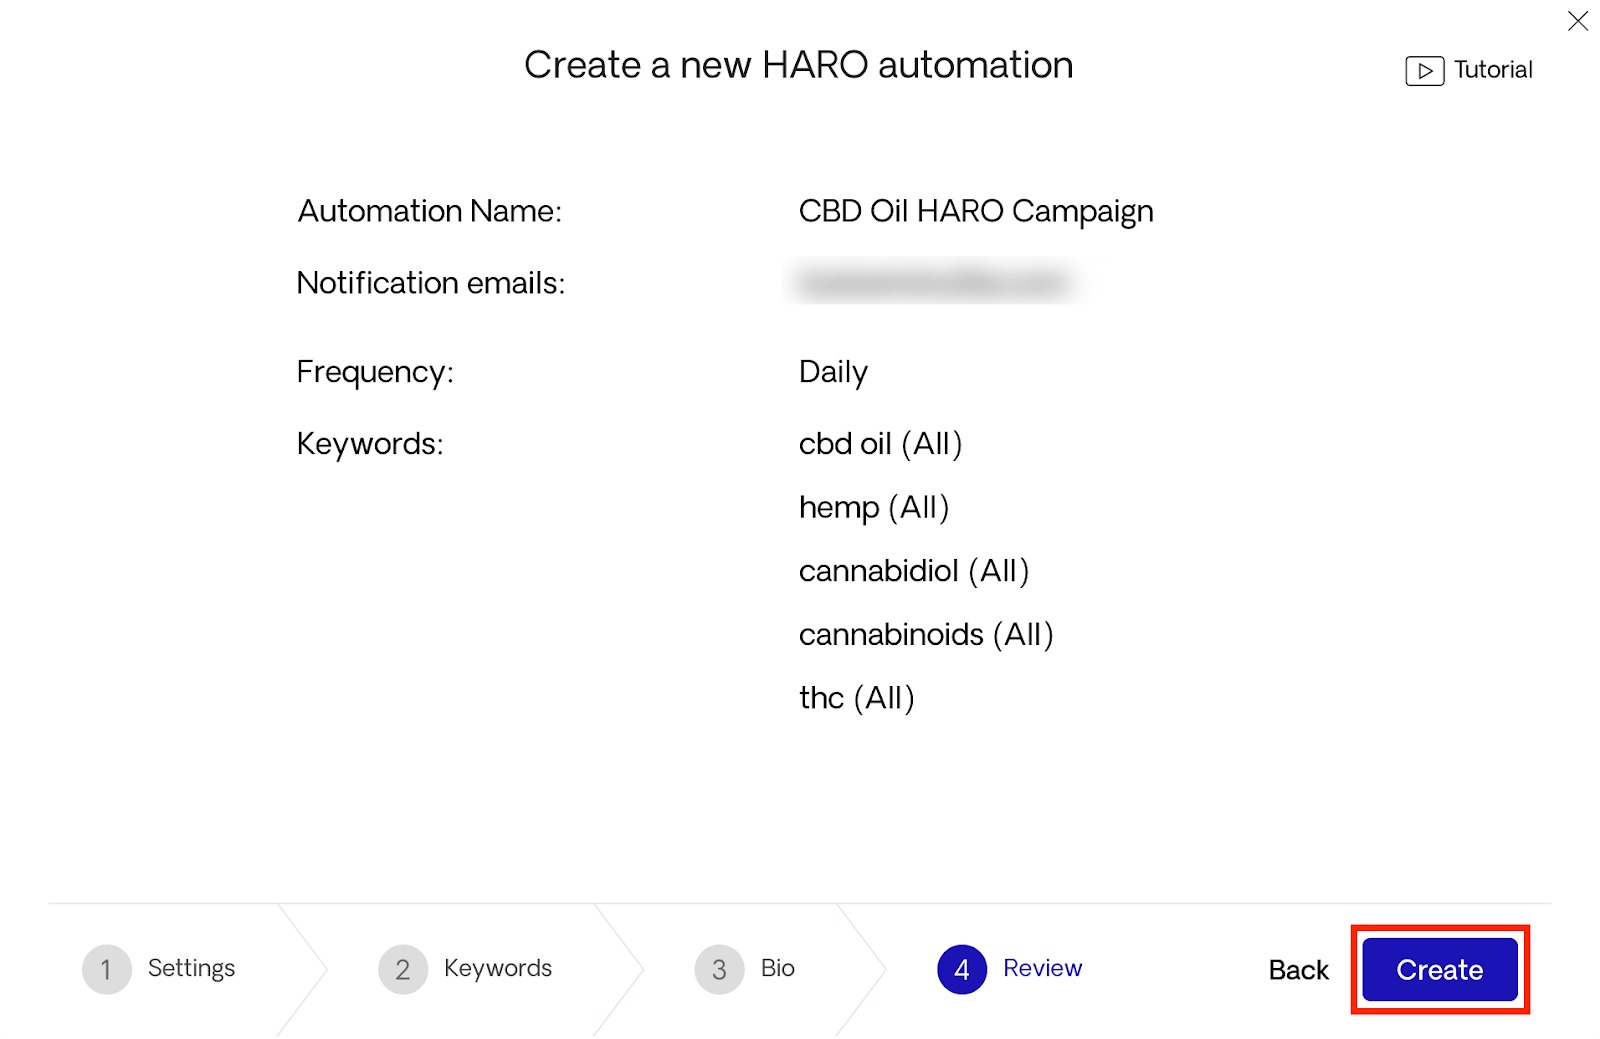 Creating HARO automation